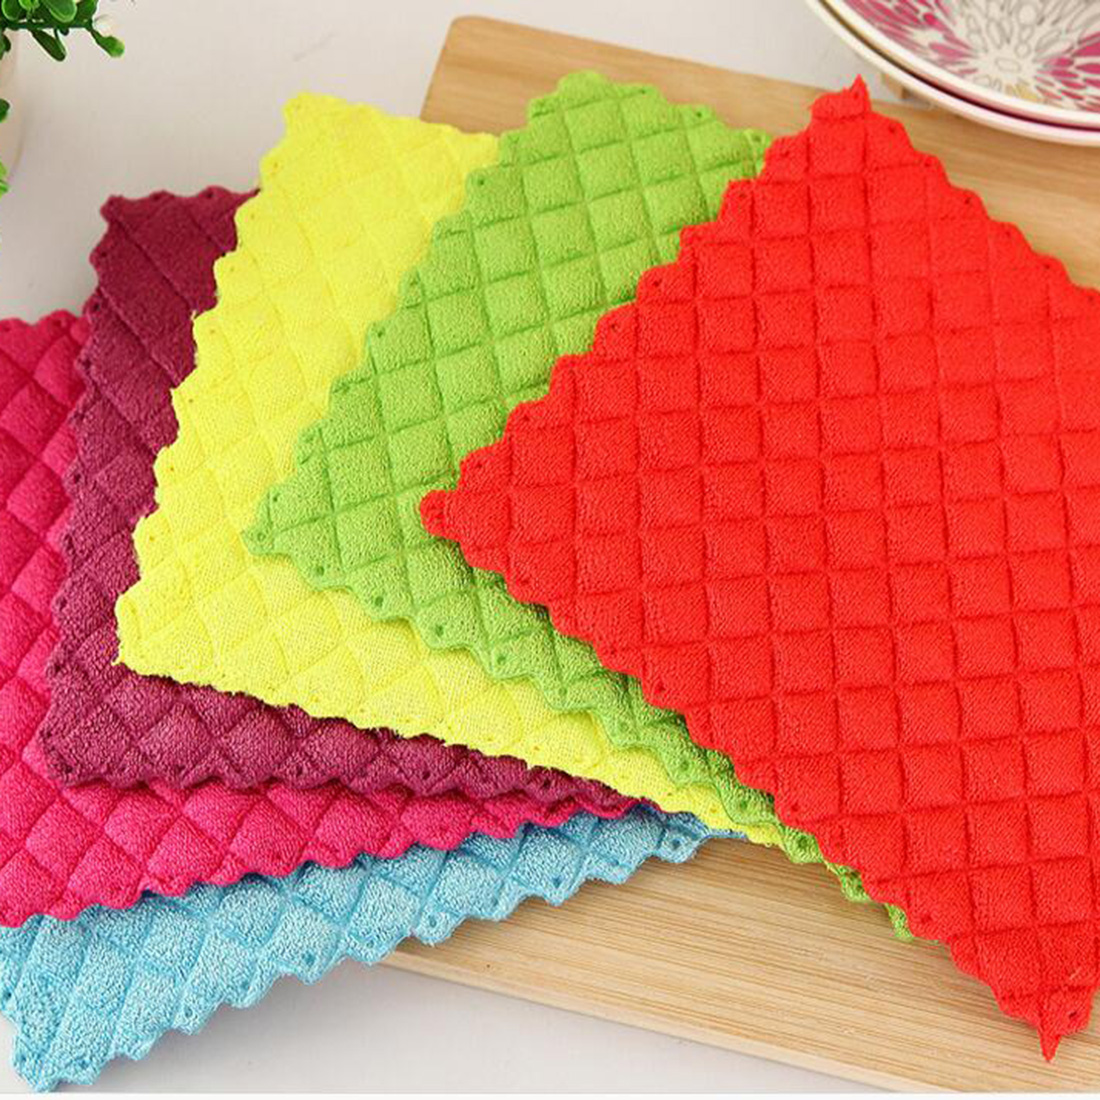 High efficient Anti-Greasy color dish cloth colorful washing dish towel magic Kitchen cleaning cloth wiping rags нож для пиццы